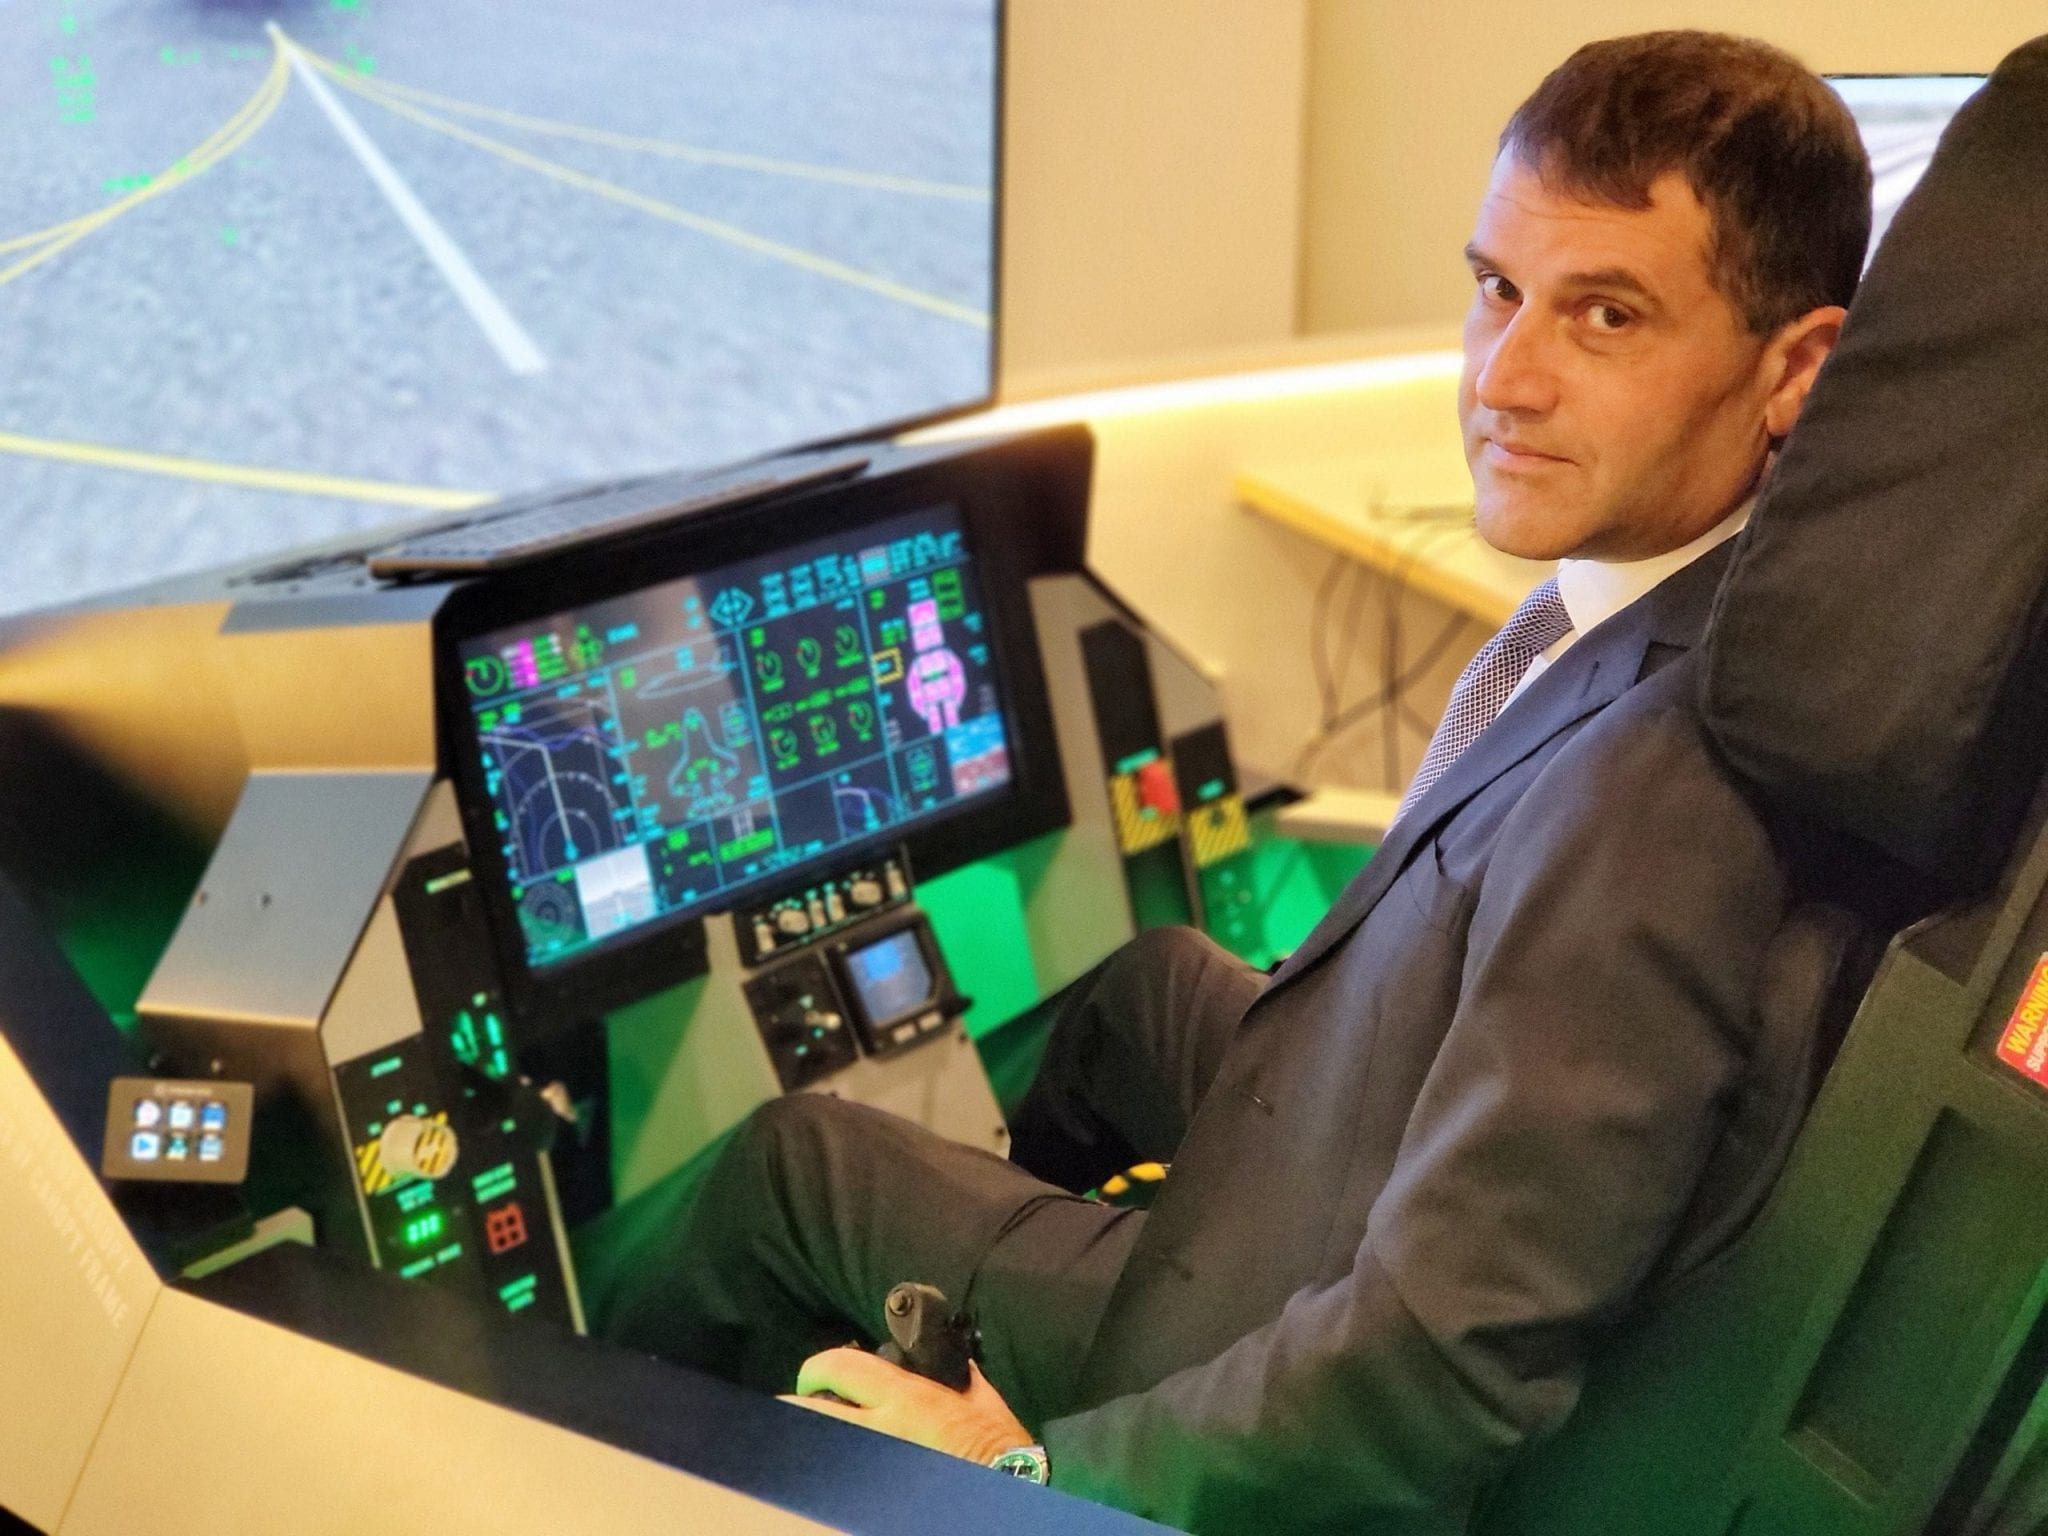 Israeli Air Force pilots share the thrill of flying, lessons learned at new online flight simulator center of excellence